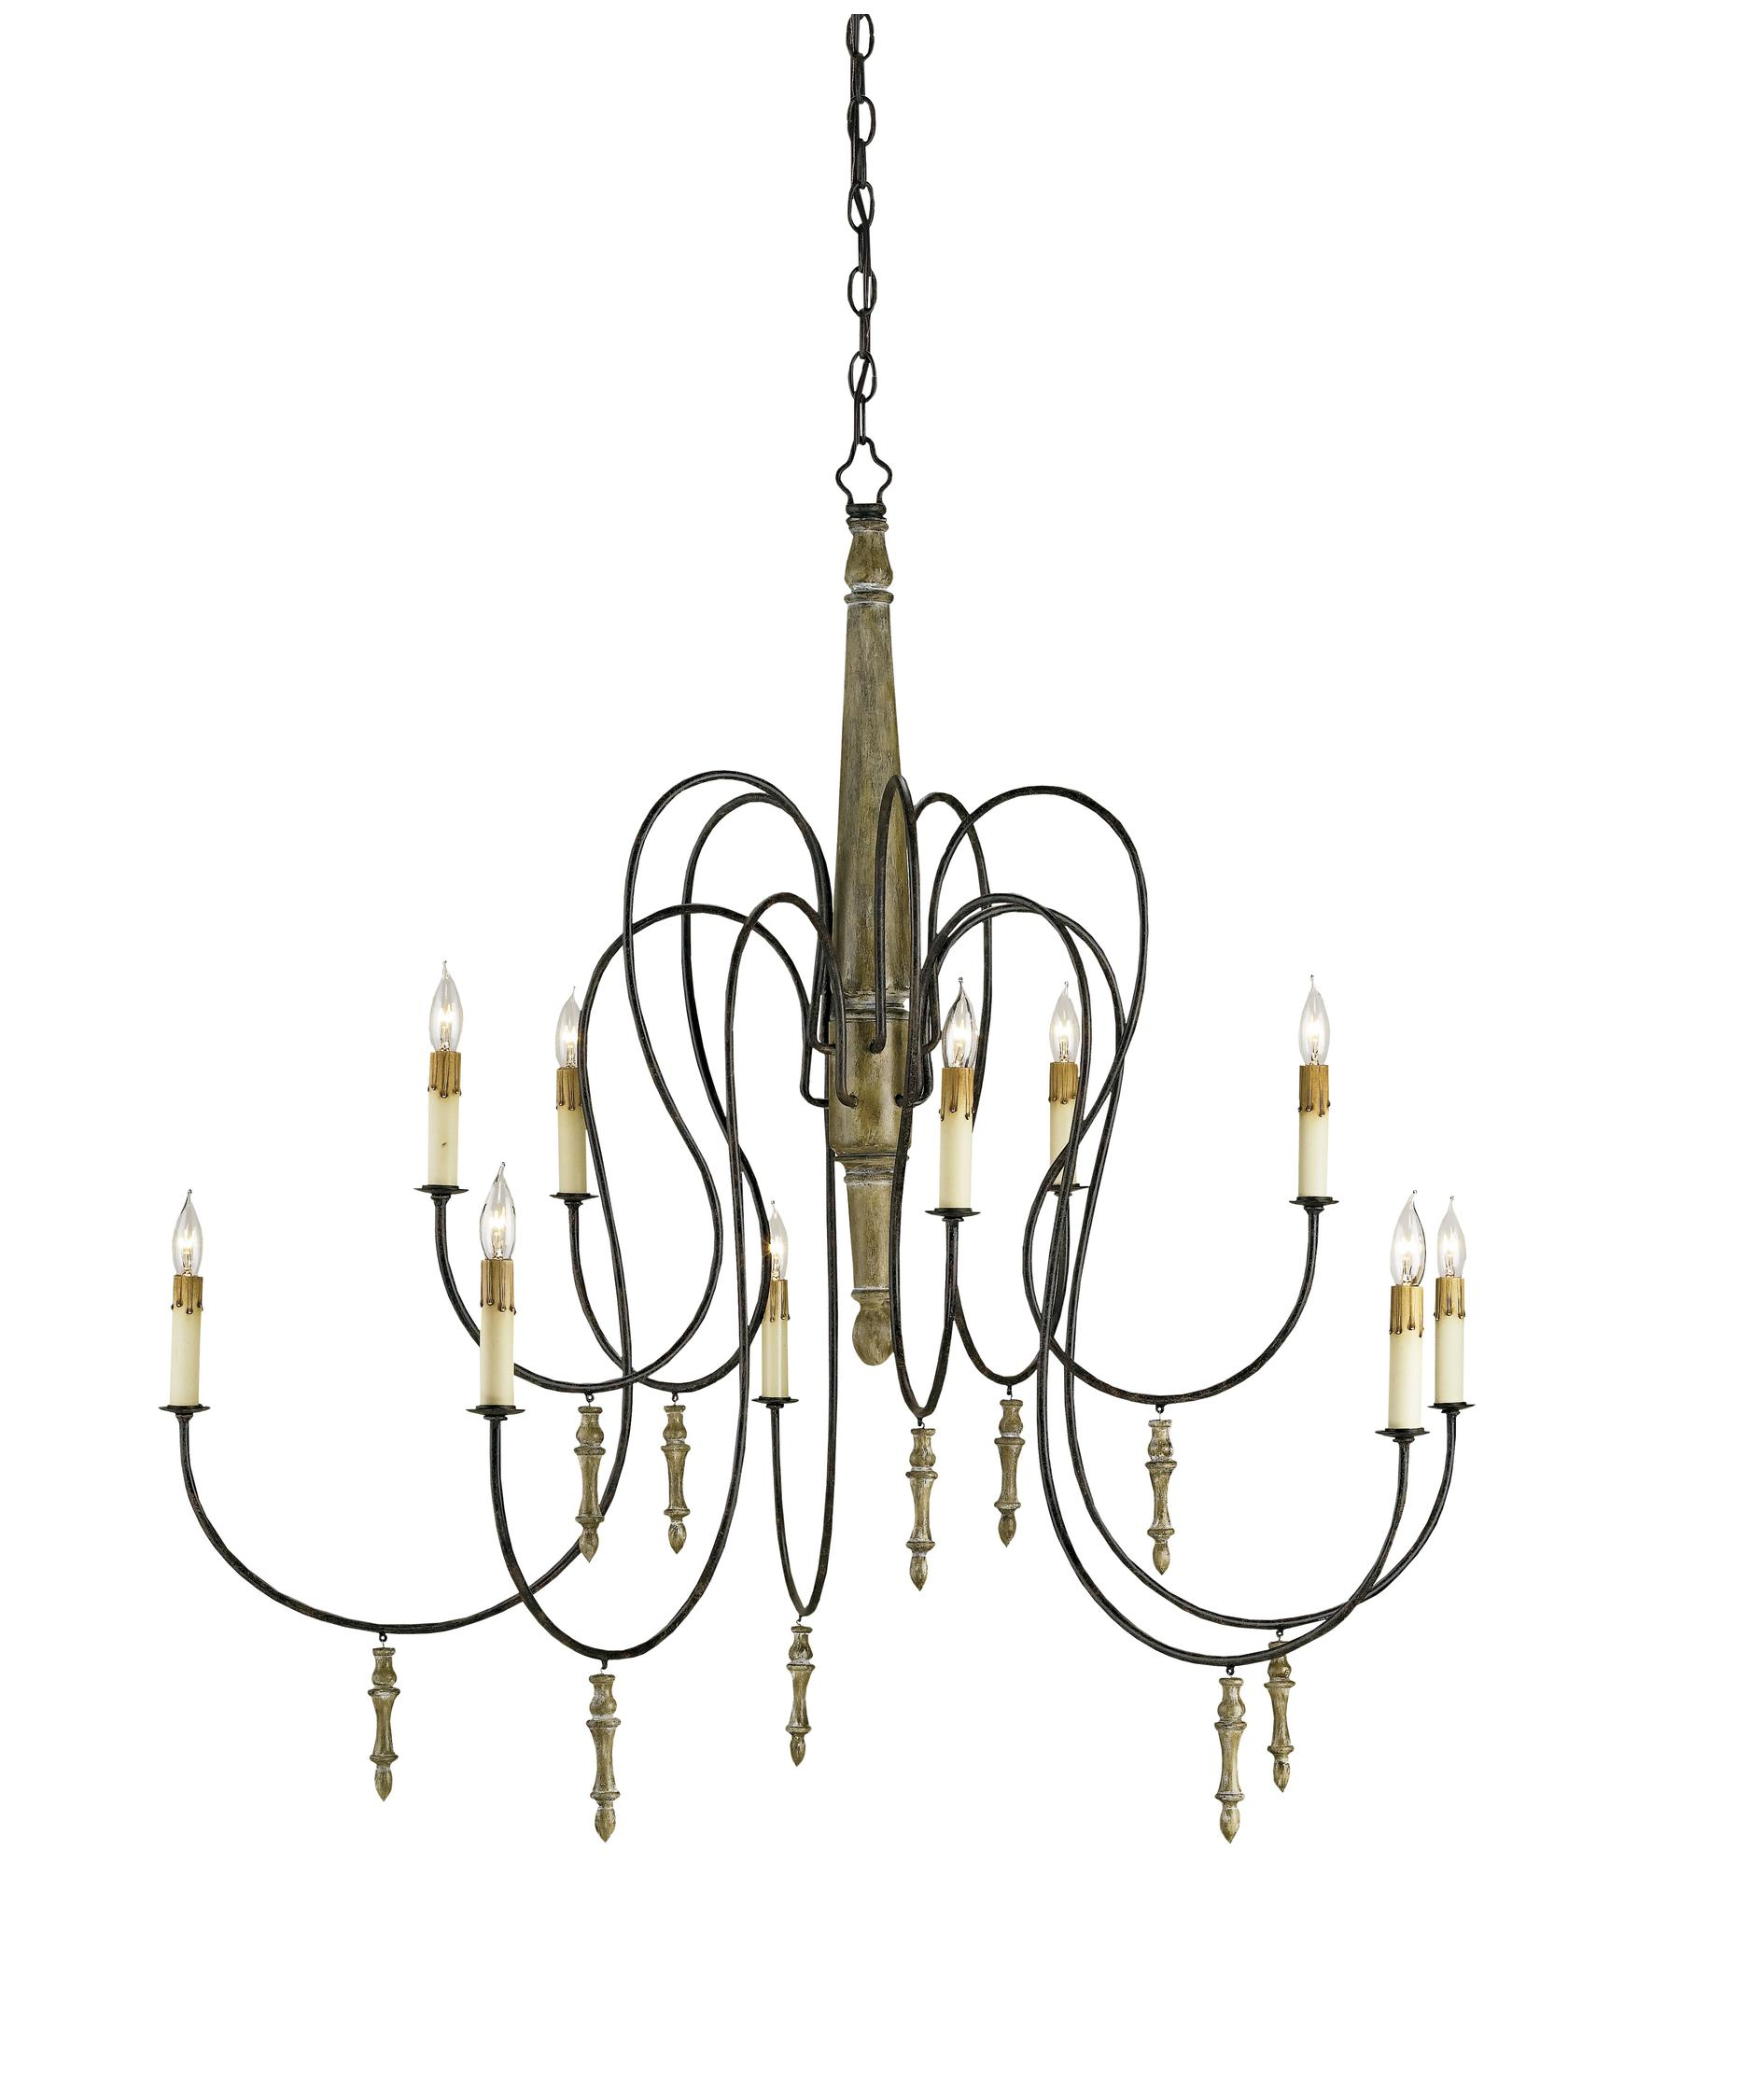 Currey and Company Rouleau 39 Inch Wide 1 Light Chandelier – Currey and Company Lighting Chandeliers